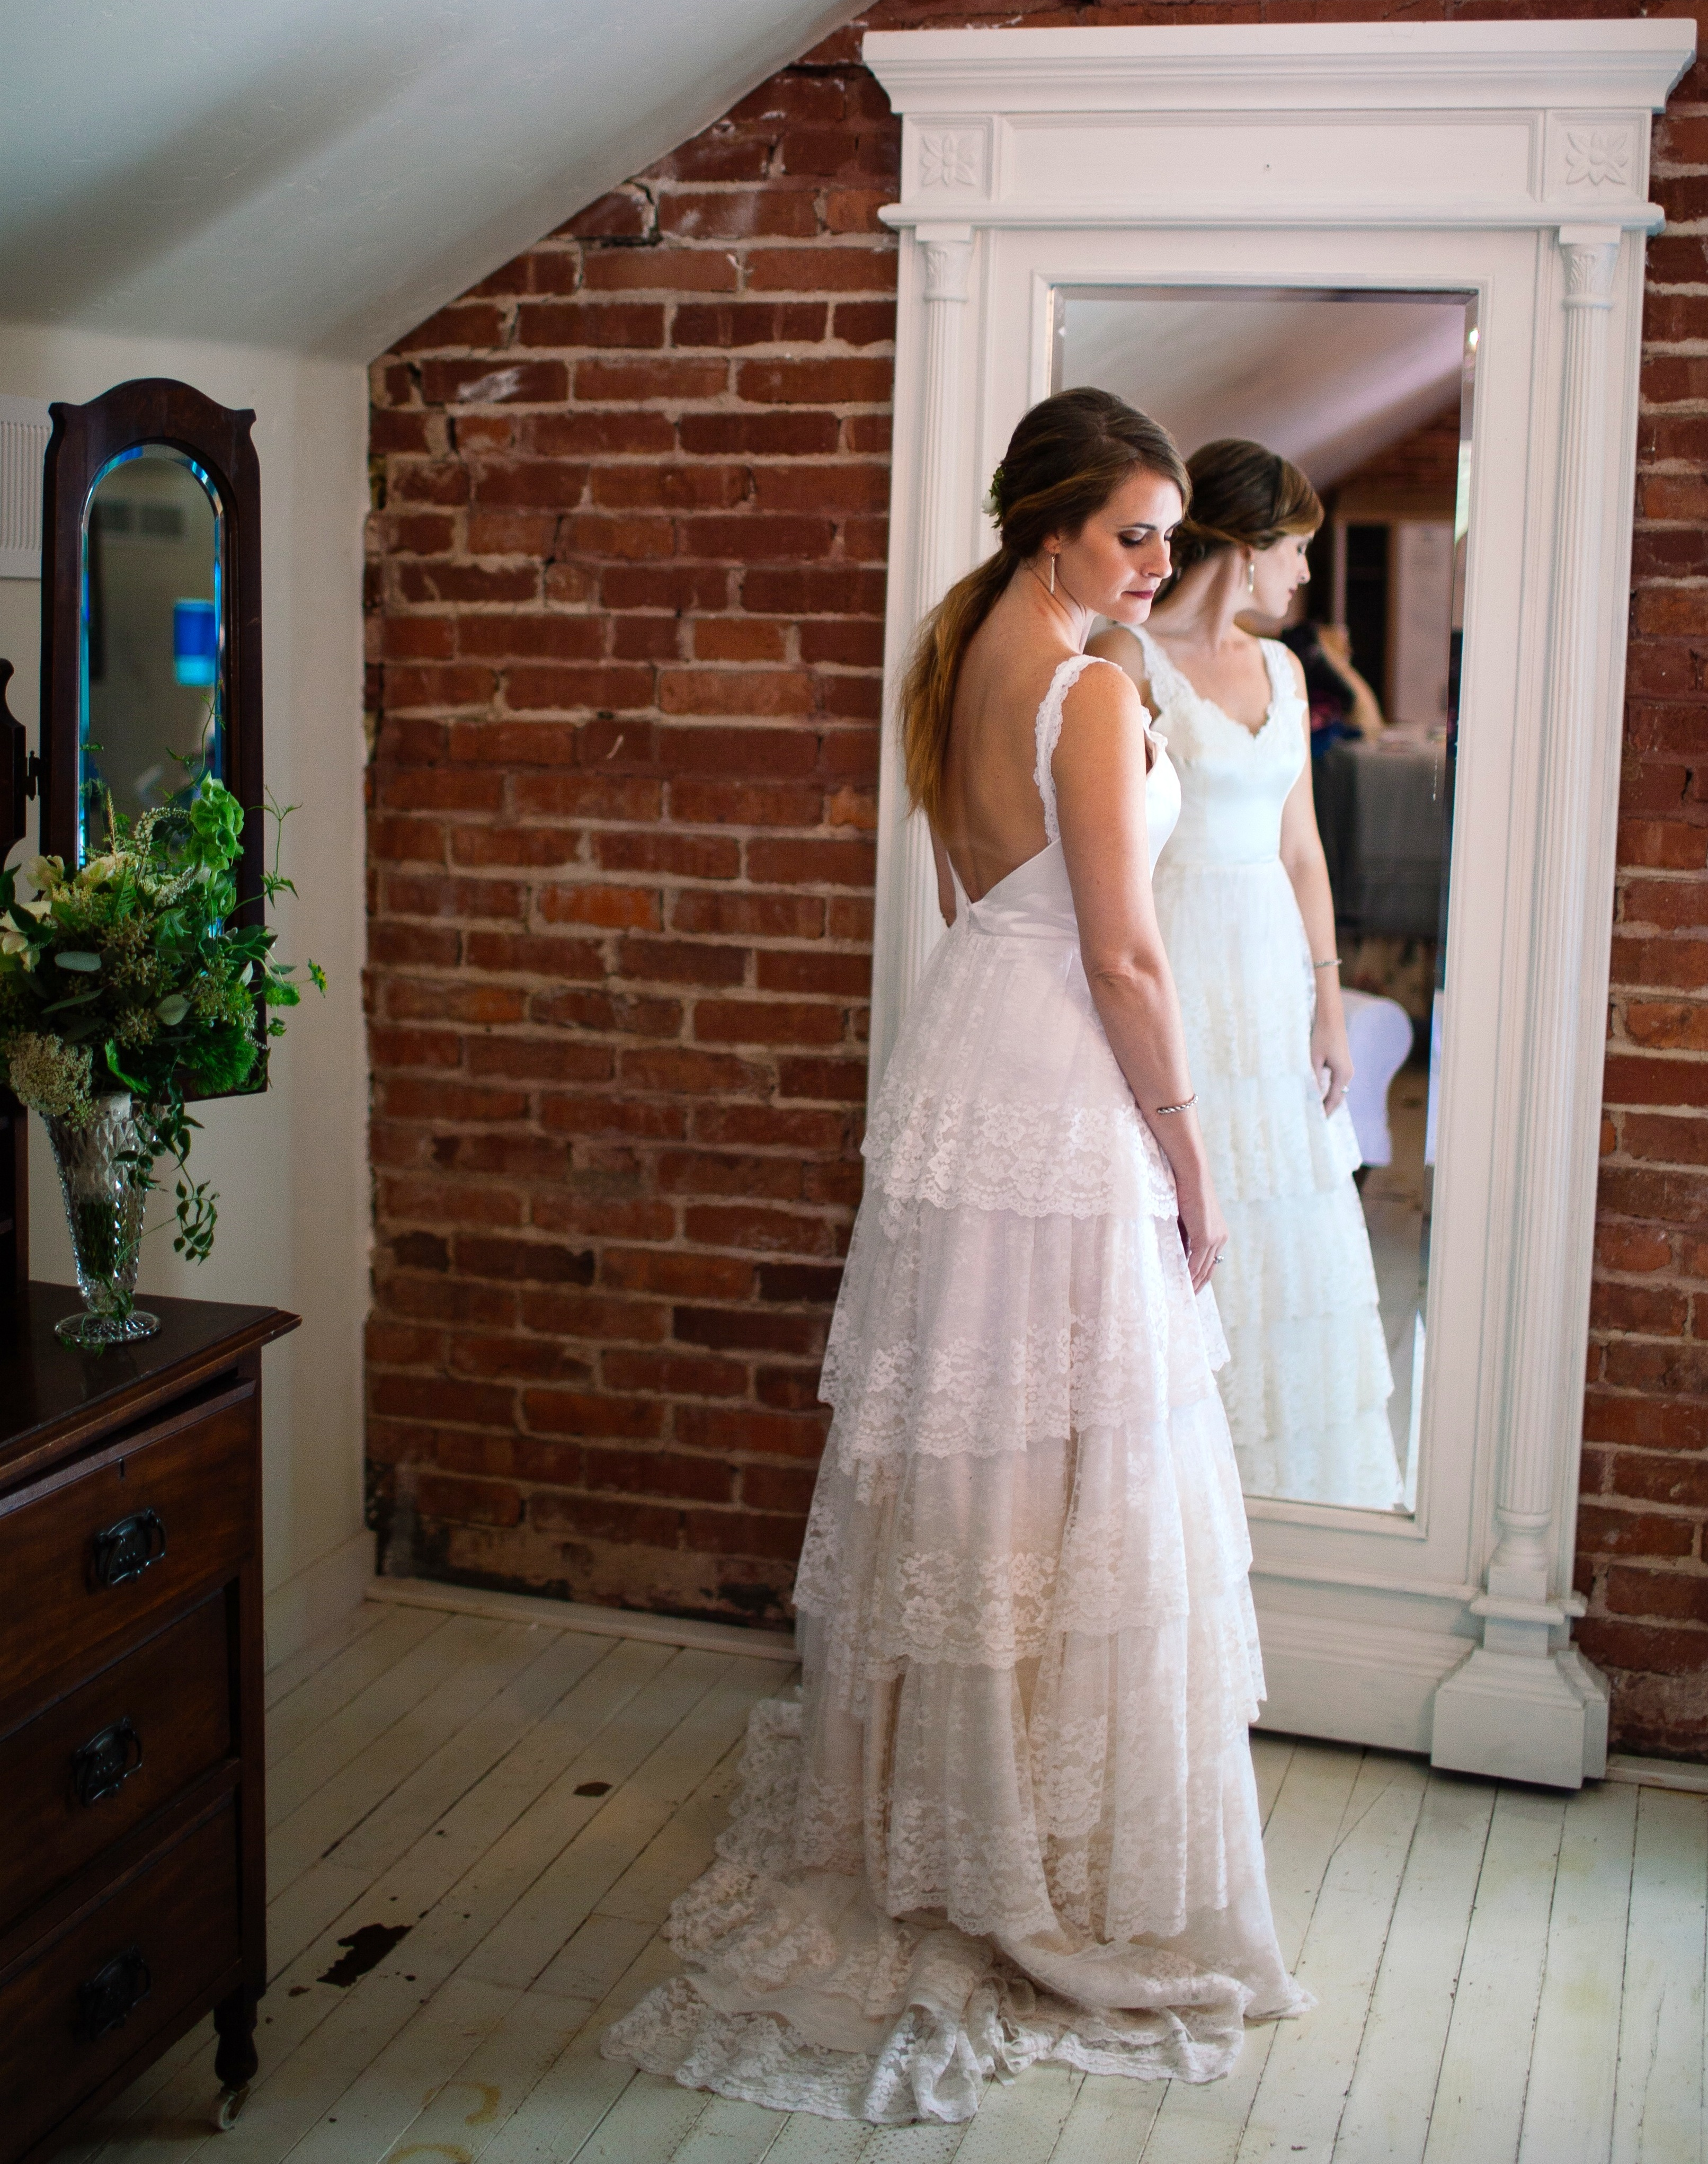 Unique wedding dresses springfield mo 2017 wedding dress idea blog from wedding dresses springfield mo image source janay a ombrellifo Image collections